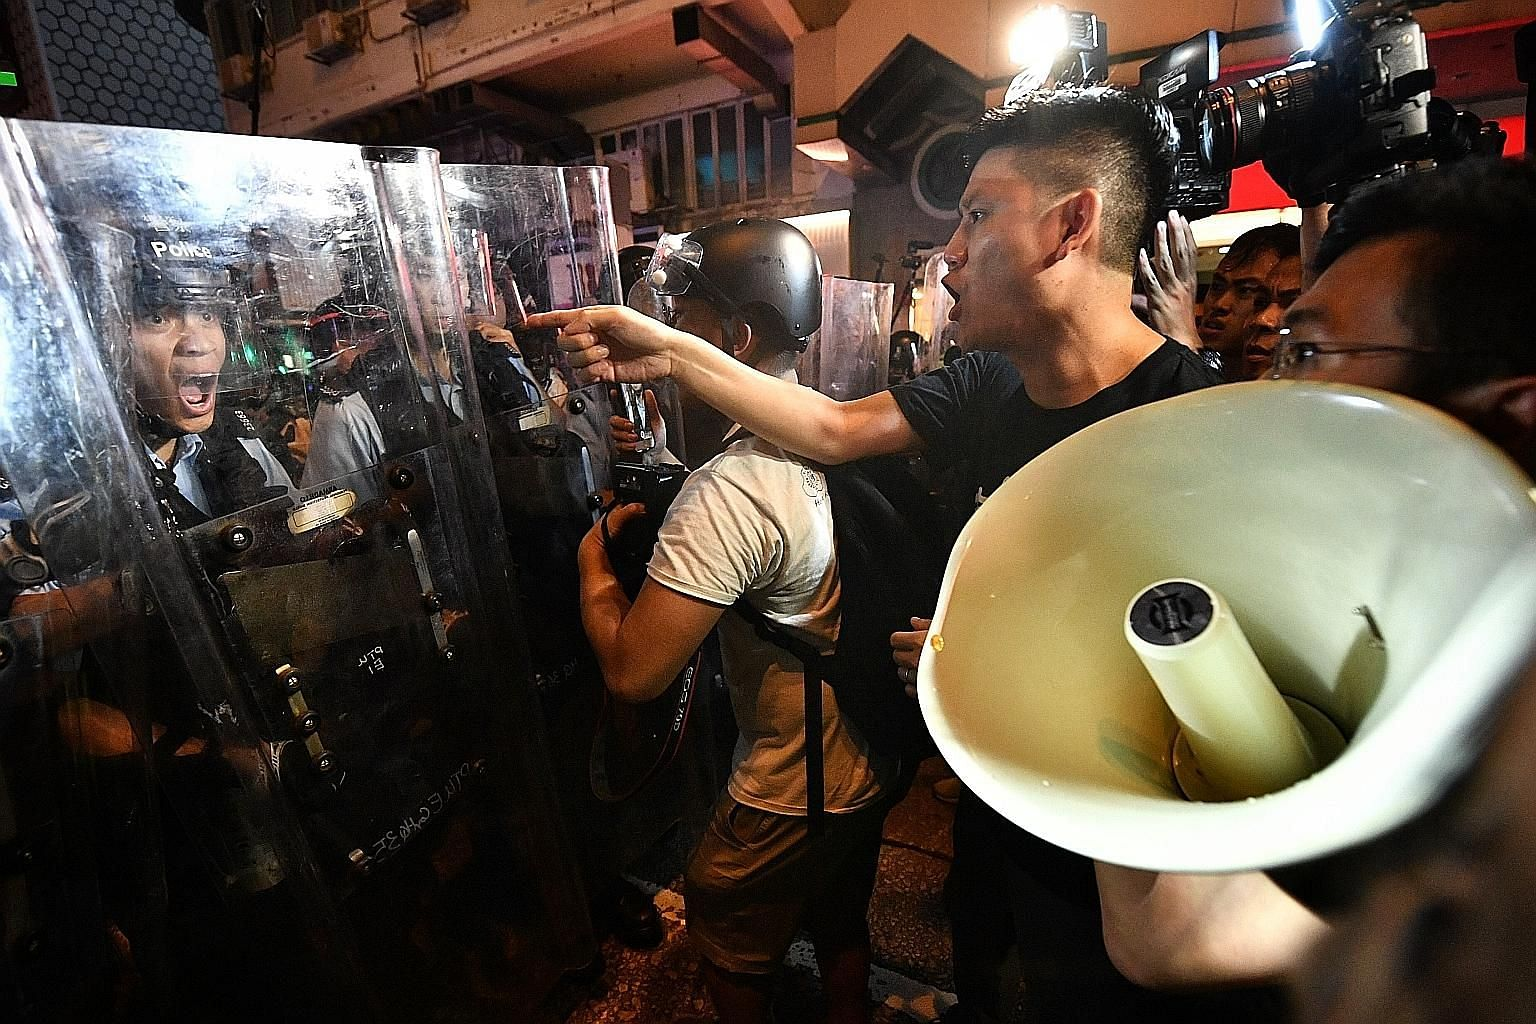 """Hong Kong Legislative Council members Au Nok-hin ( with loud hailer) and Jeremy Tam clashing with police in Mongkok on Sunday. The protesters are now planning to """"stress test"""" targets like the Bank of China and broadcaster TVB in their bid to pressur"""